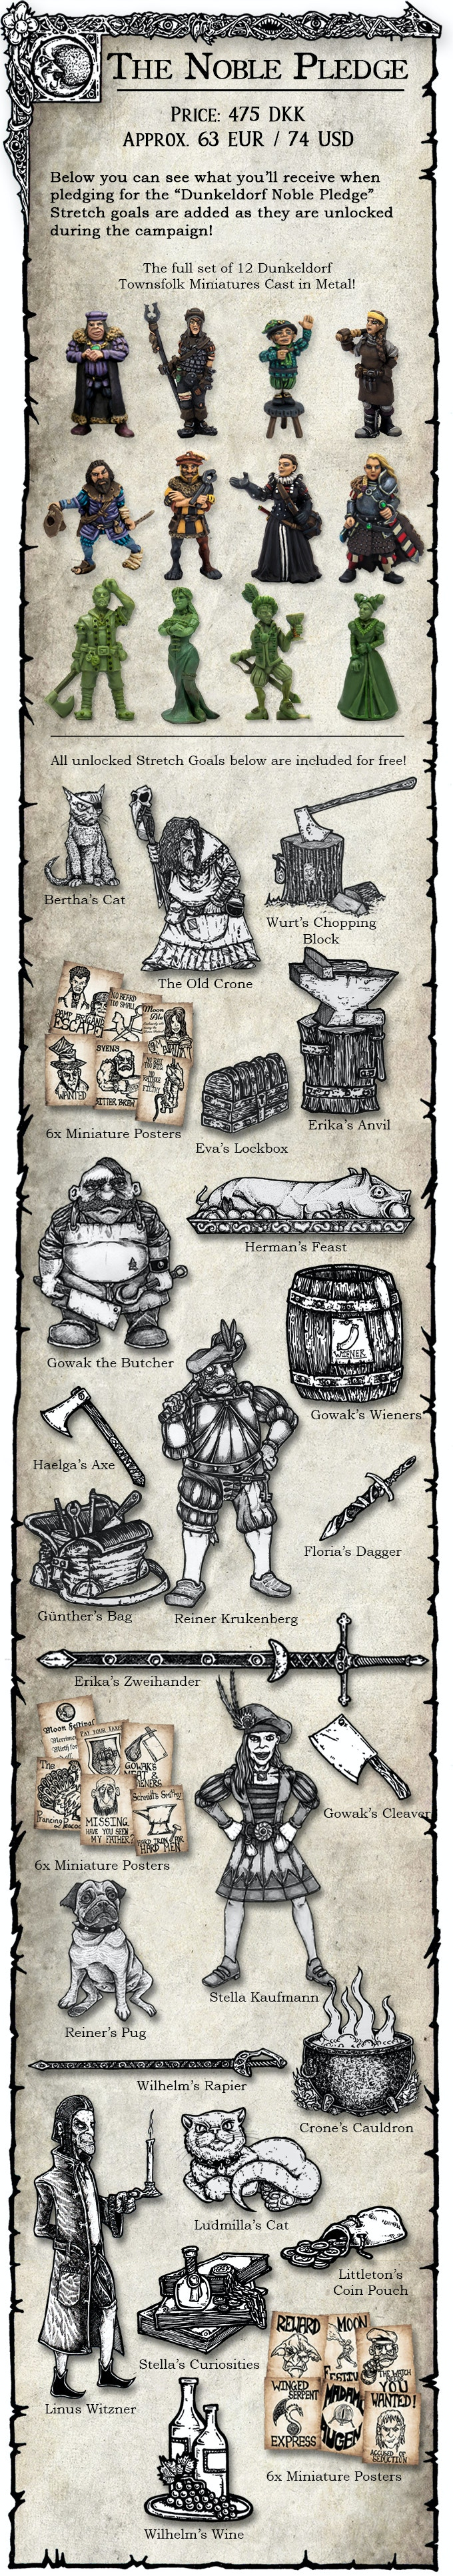 Miniatures supplied in metal, they come unpainted and may require assembly and cleaning. Certain accessories may be cast in resin!